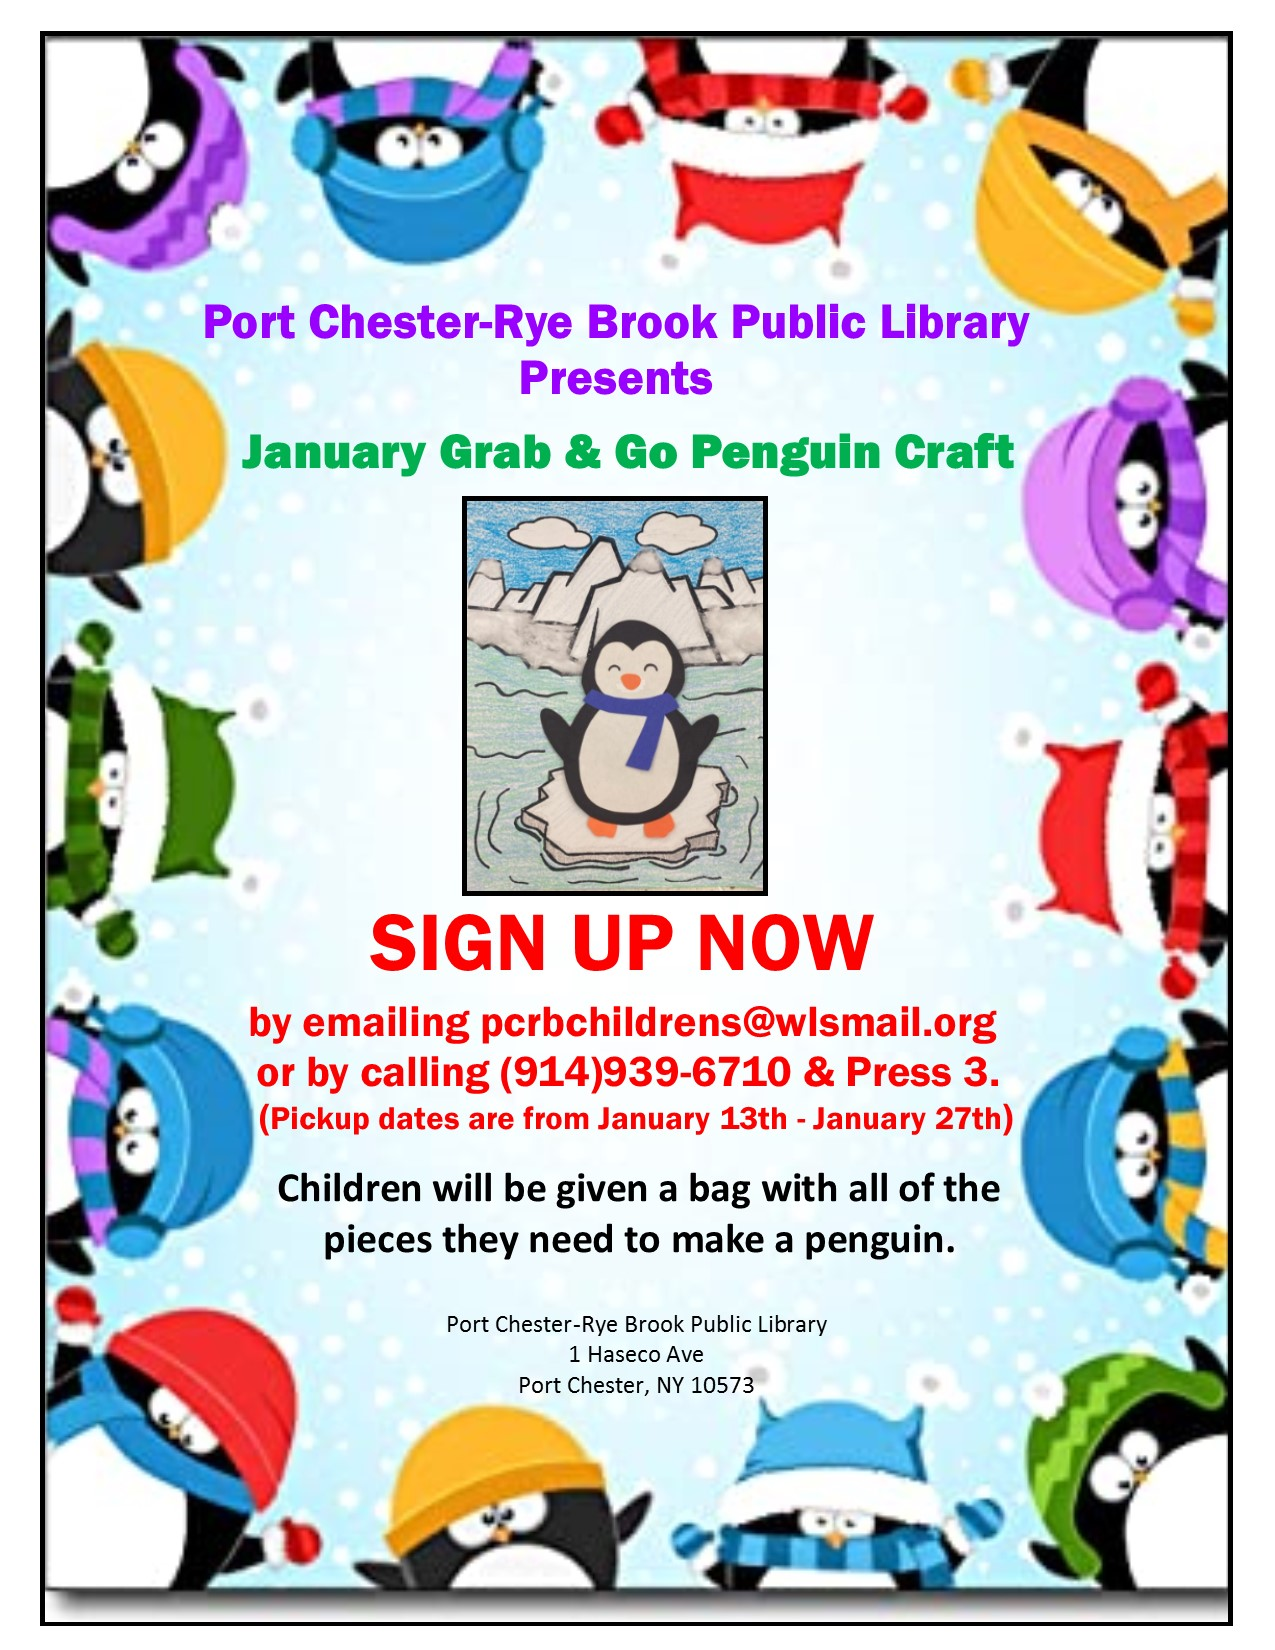 IN PERSON January Grab and Go Penguin Craft Pickup at Port Chester-Rye Brook Library